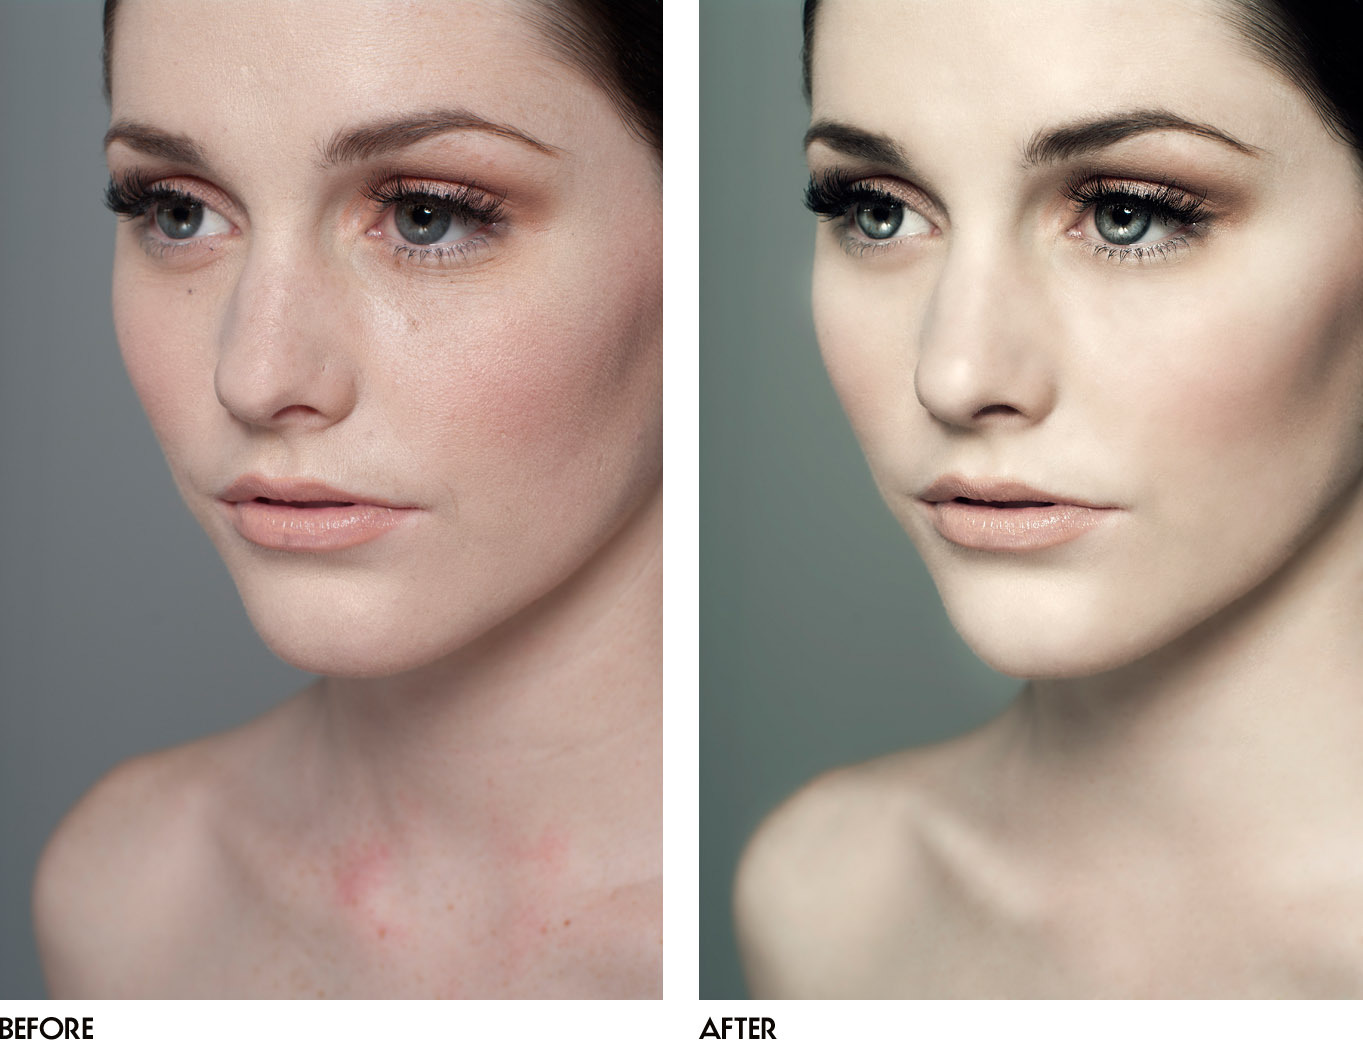 8 Photoshop Before And After Images